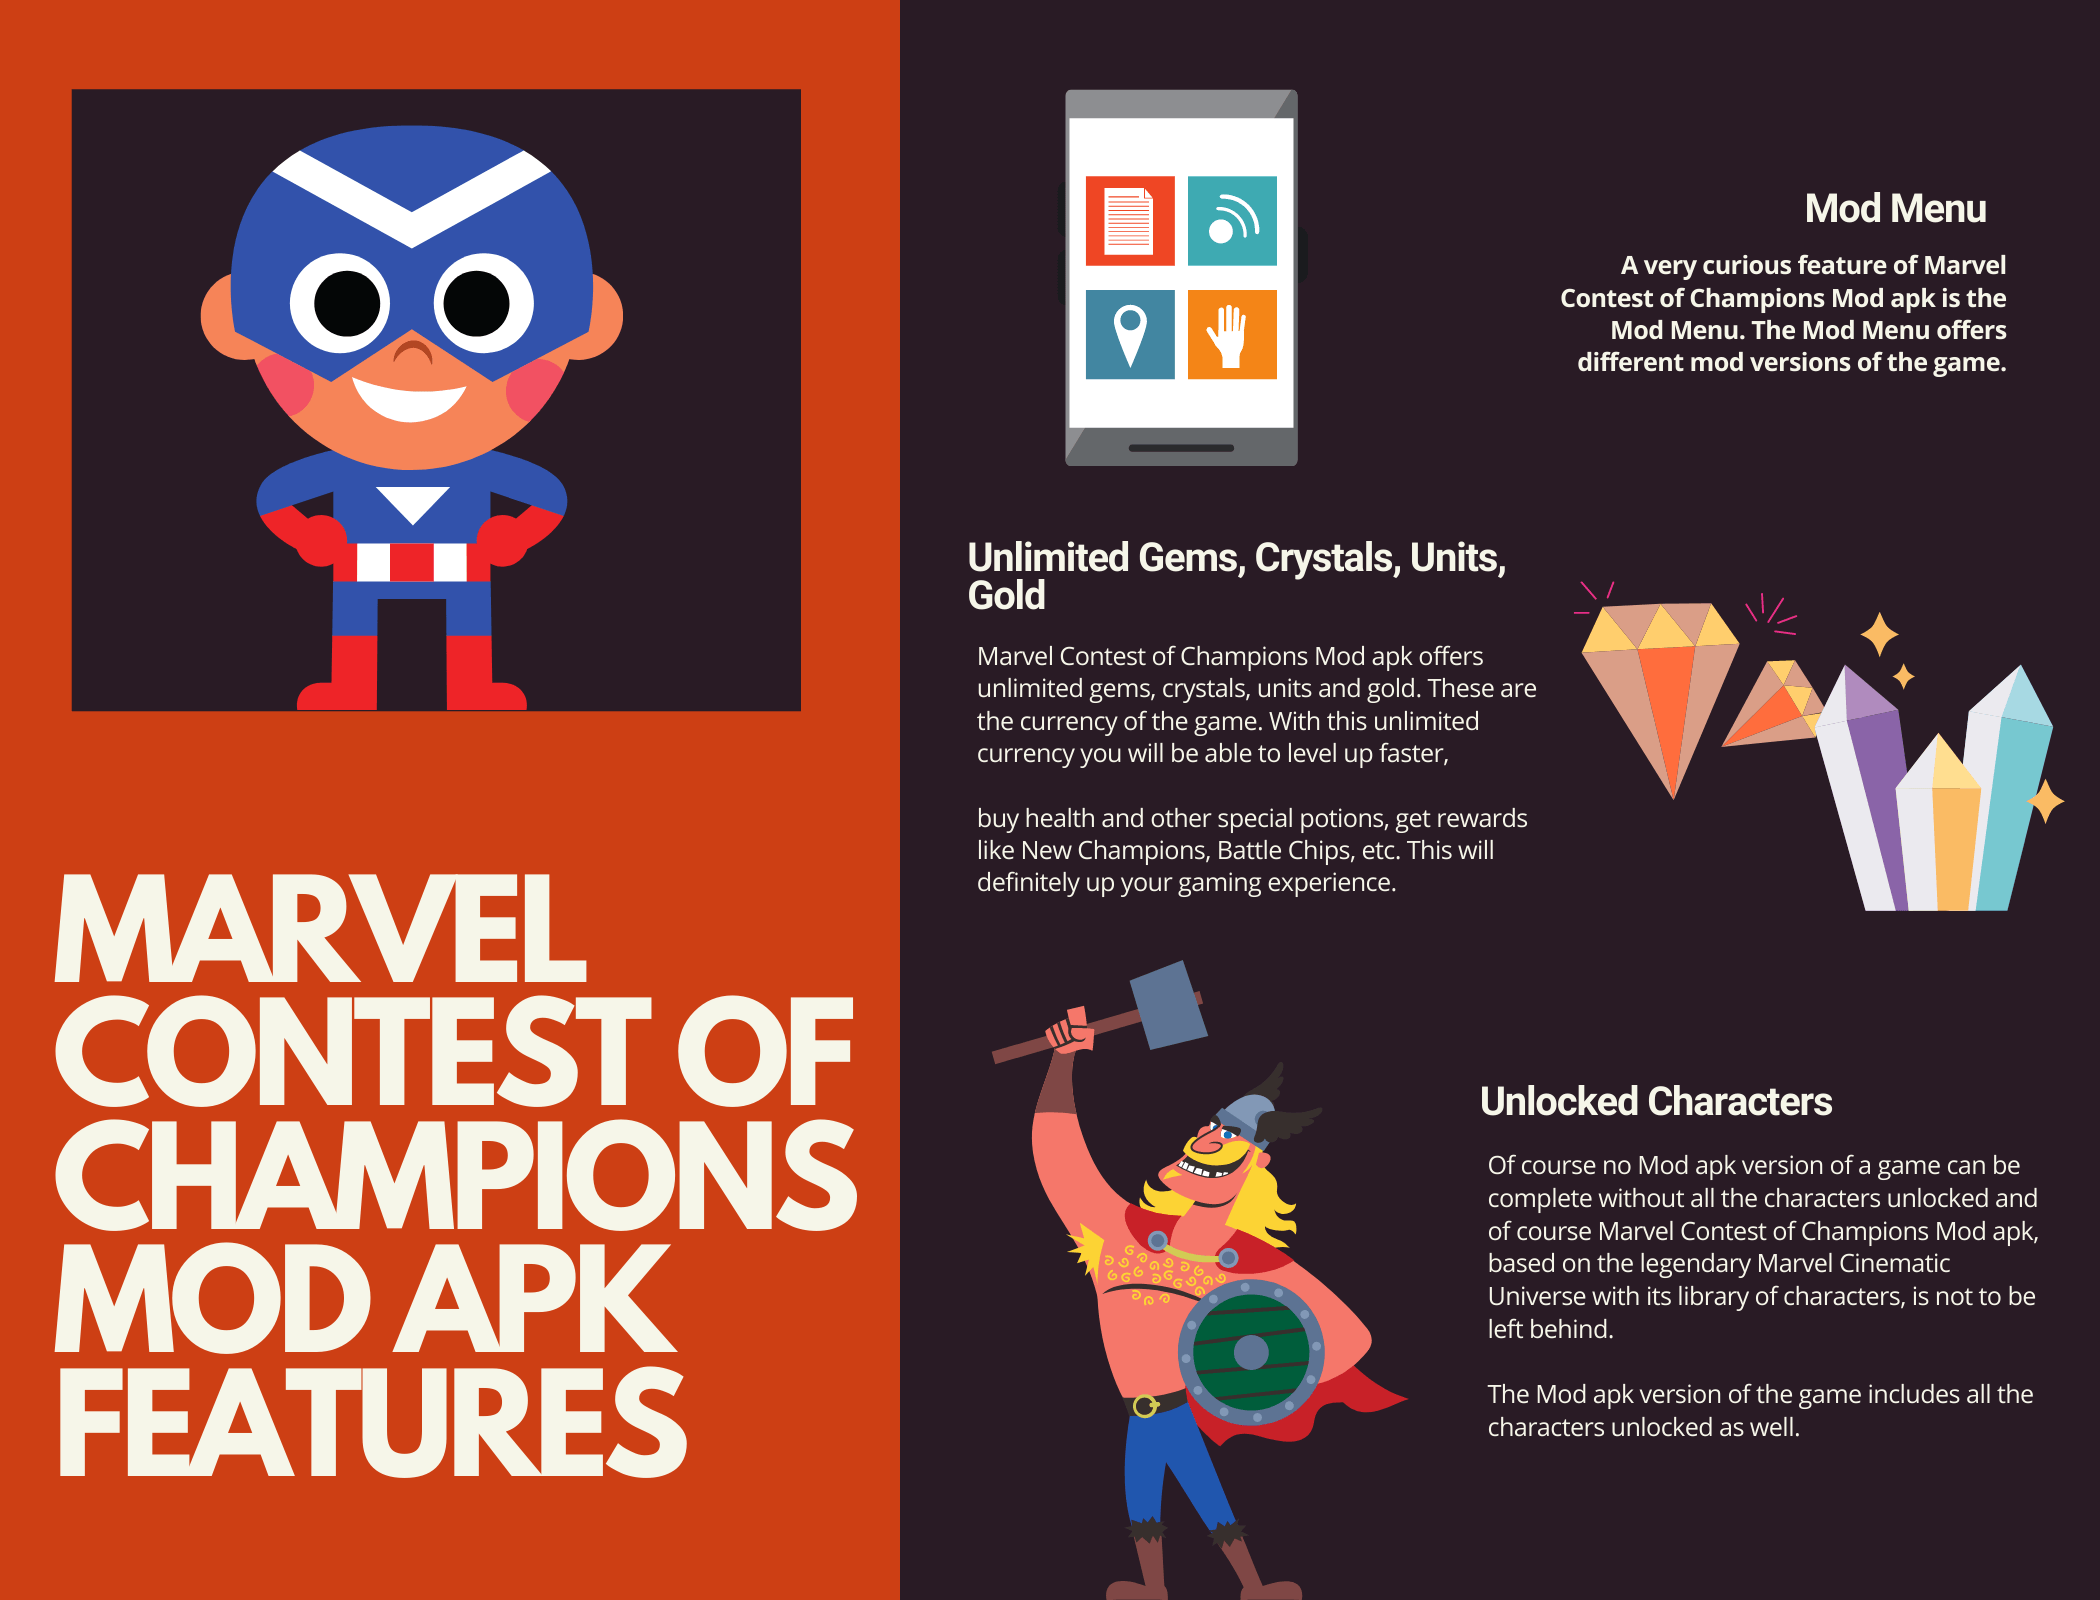 Marvel Contest of Champions Mod apk Features